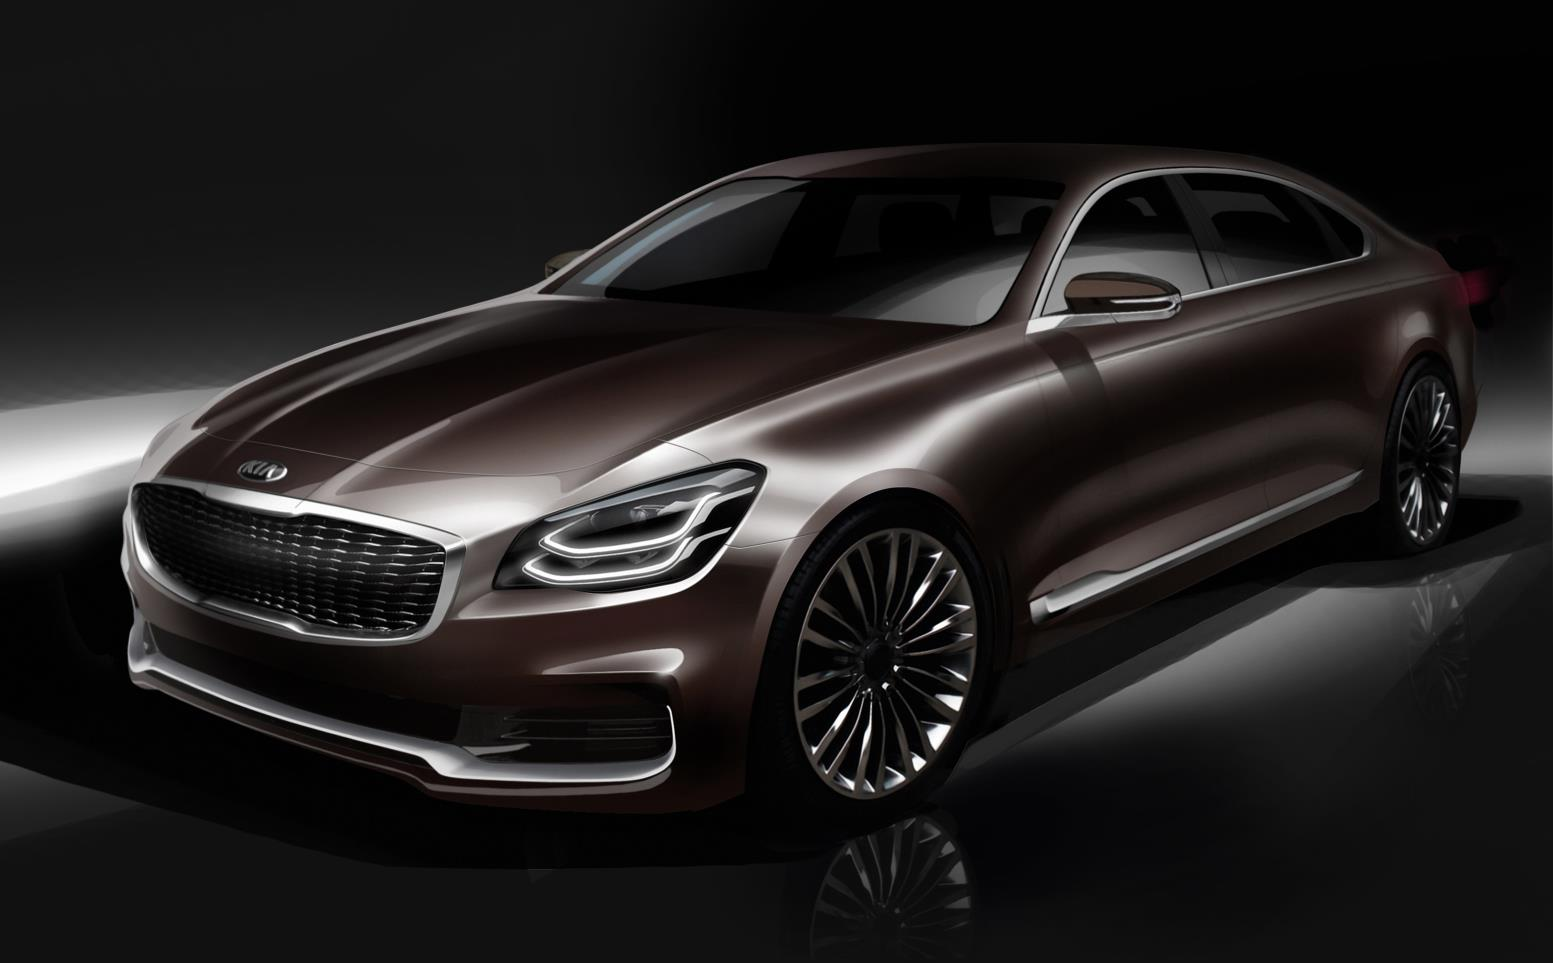 2019 Kia K900 Luxury Flagship Redesign To Debut At New